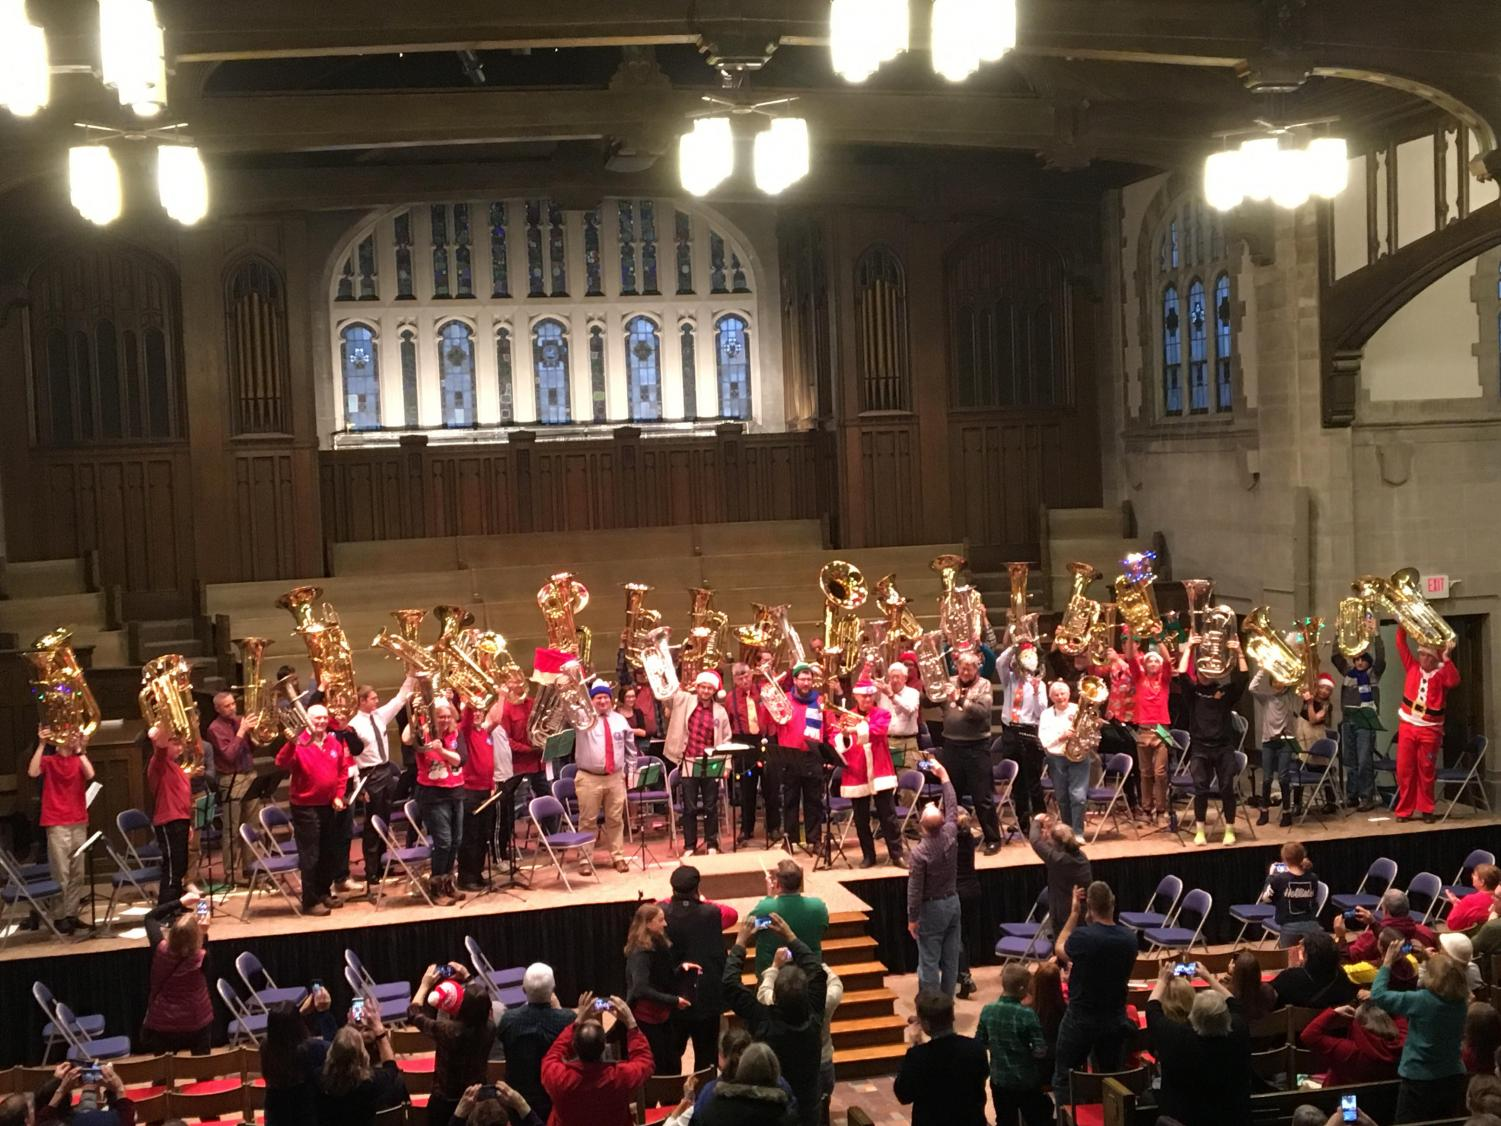 Tuba and euphonium players perform at the annual Tubachristmas